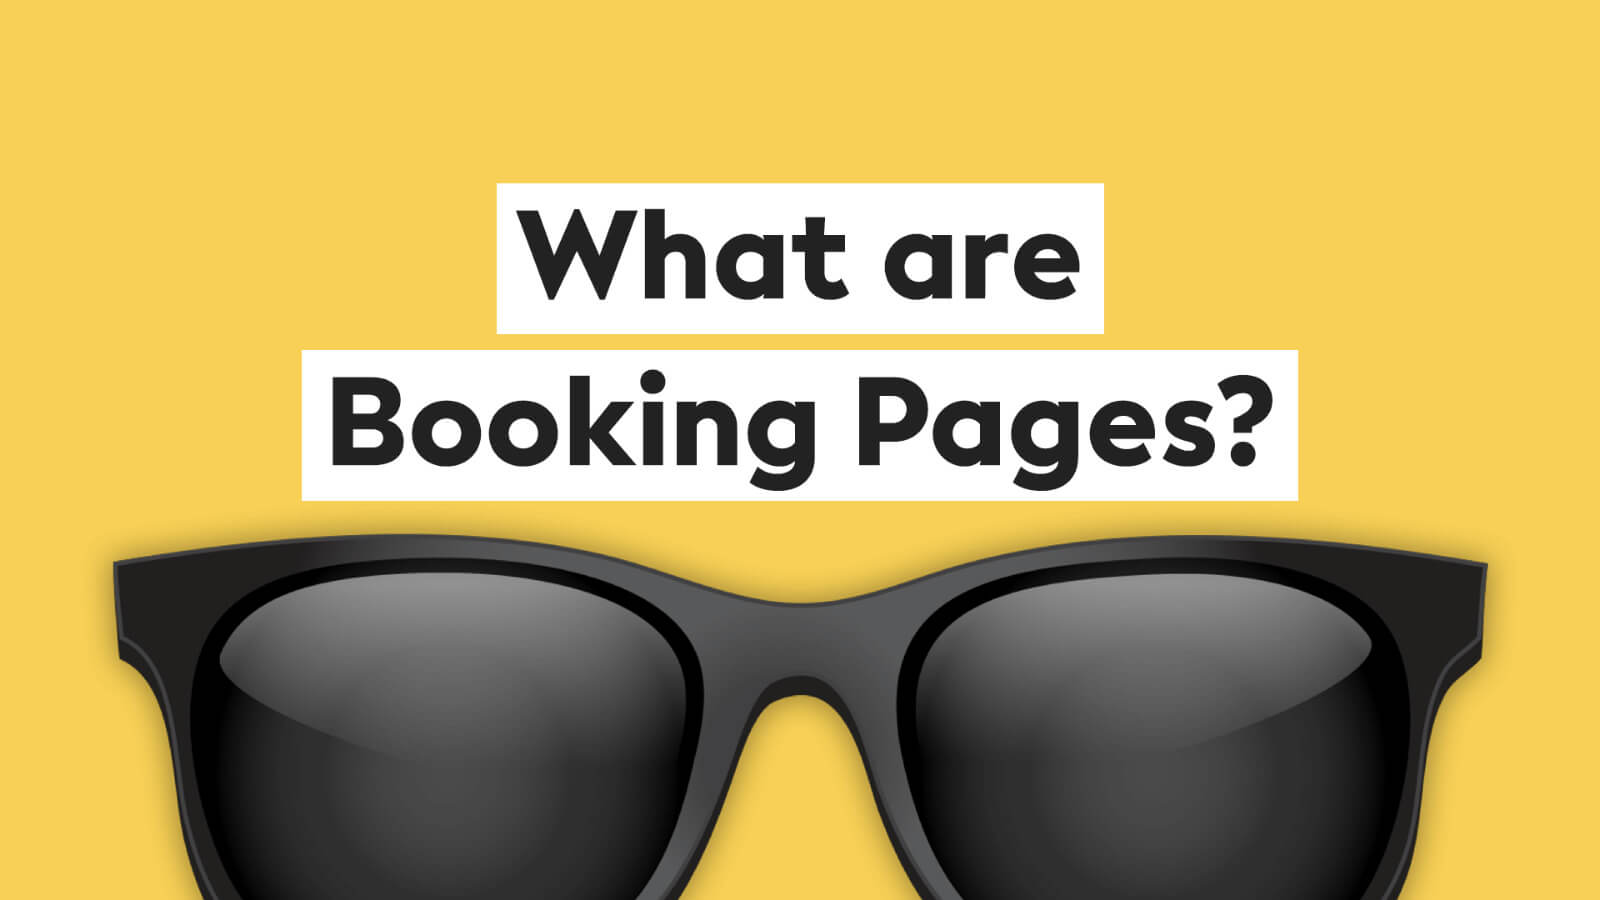 What are booking pages